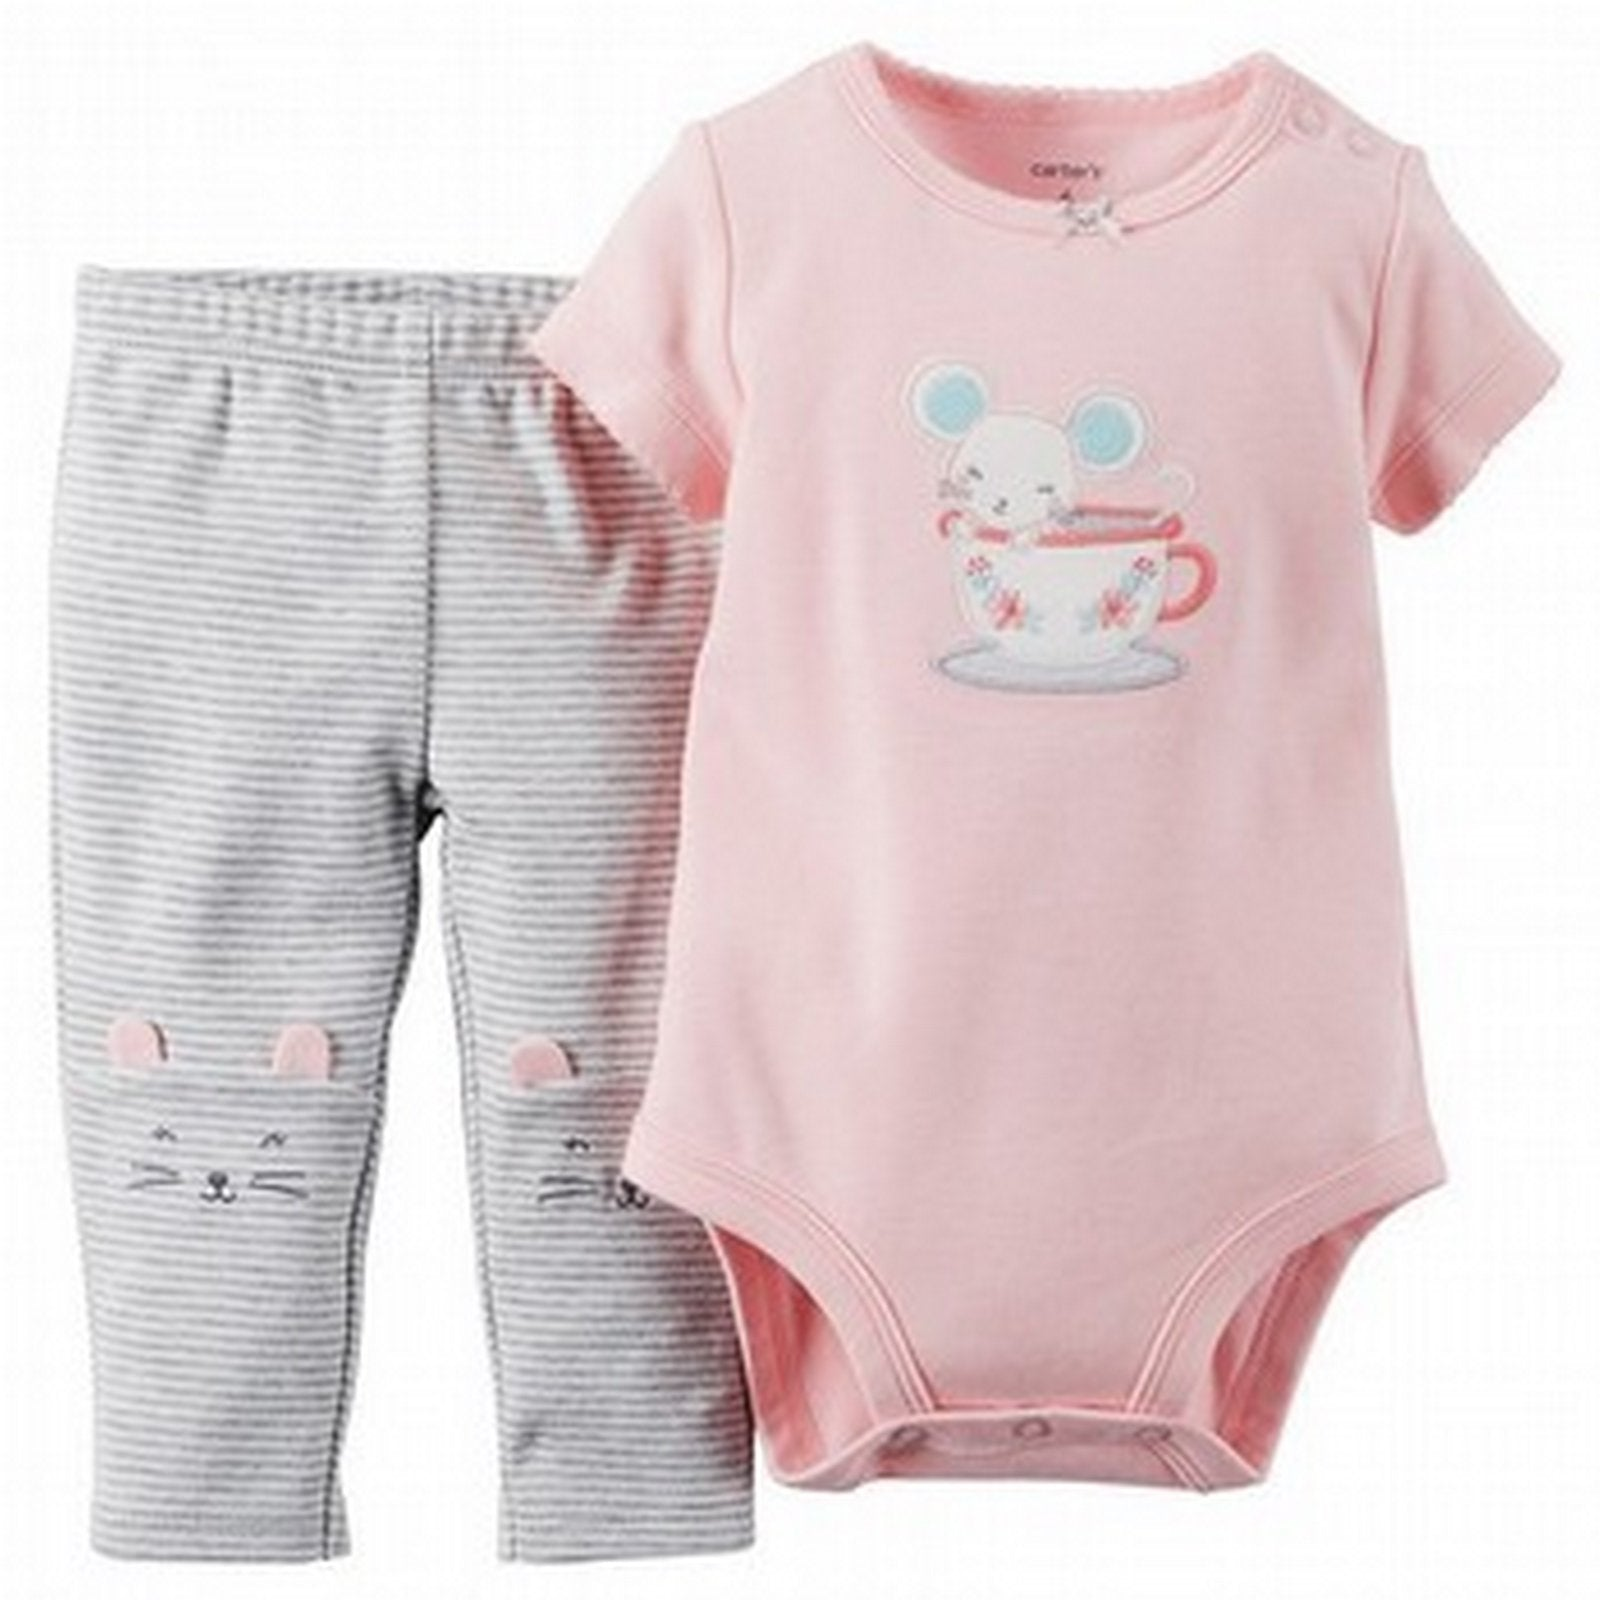 Carter's Pink Stripe 2 Piece Bodysuit & Pant Set  Modelo 121G172